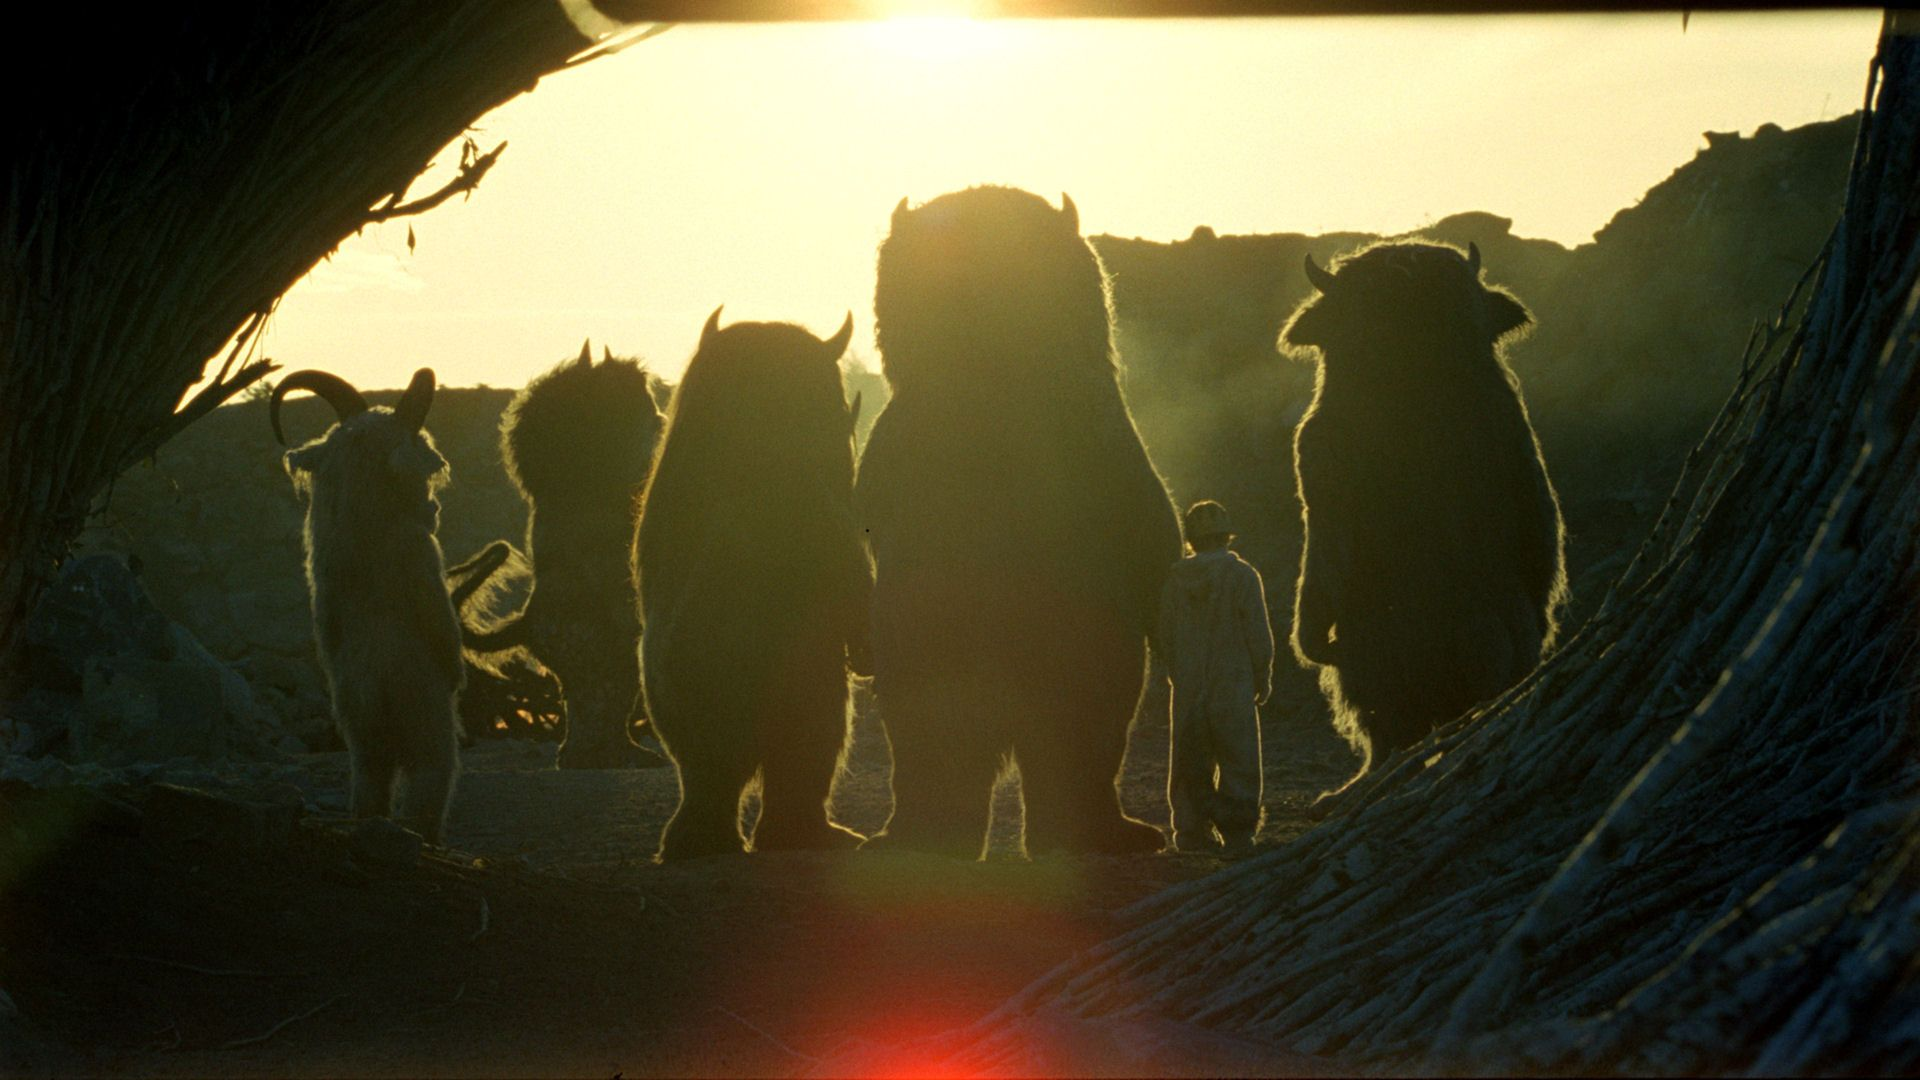 union films review where the wild things are